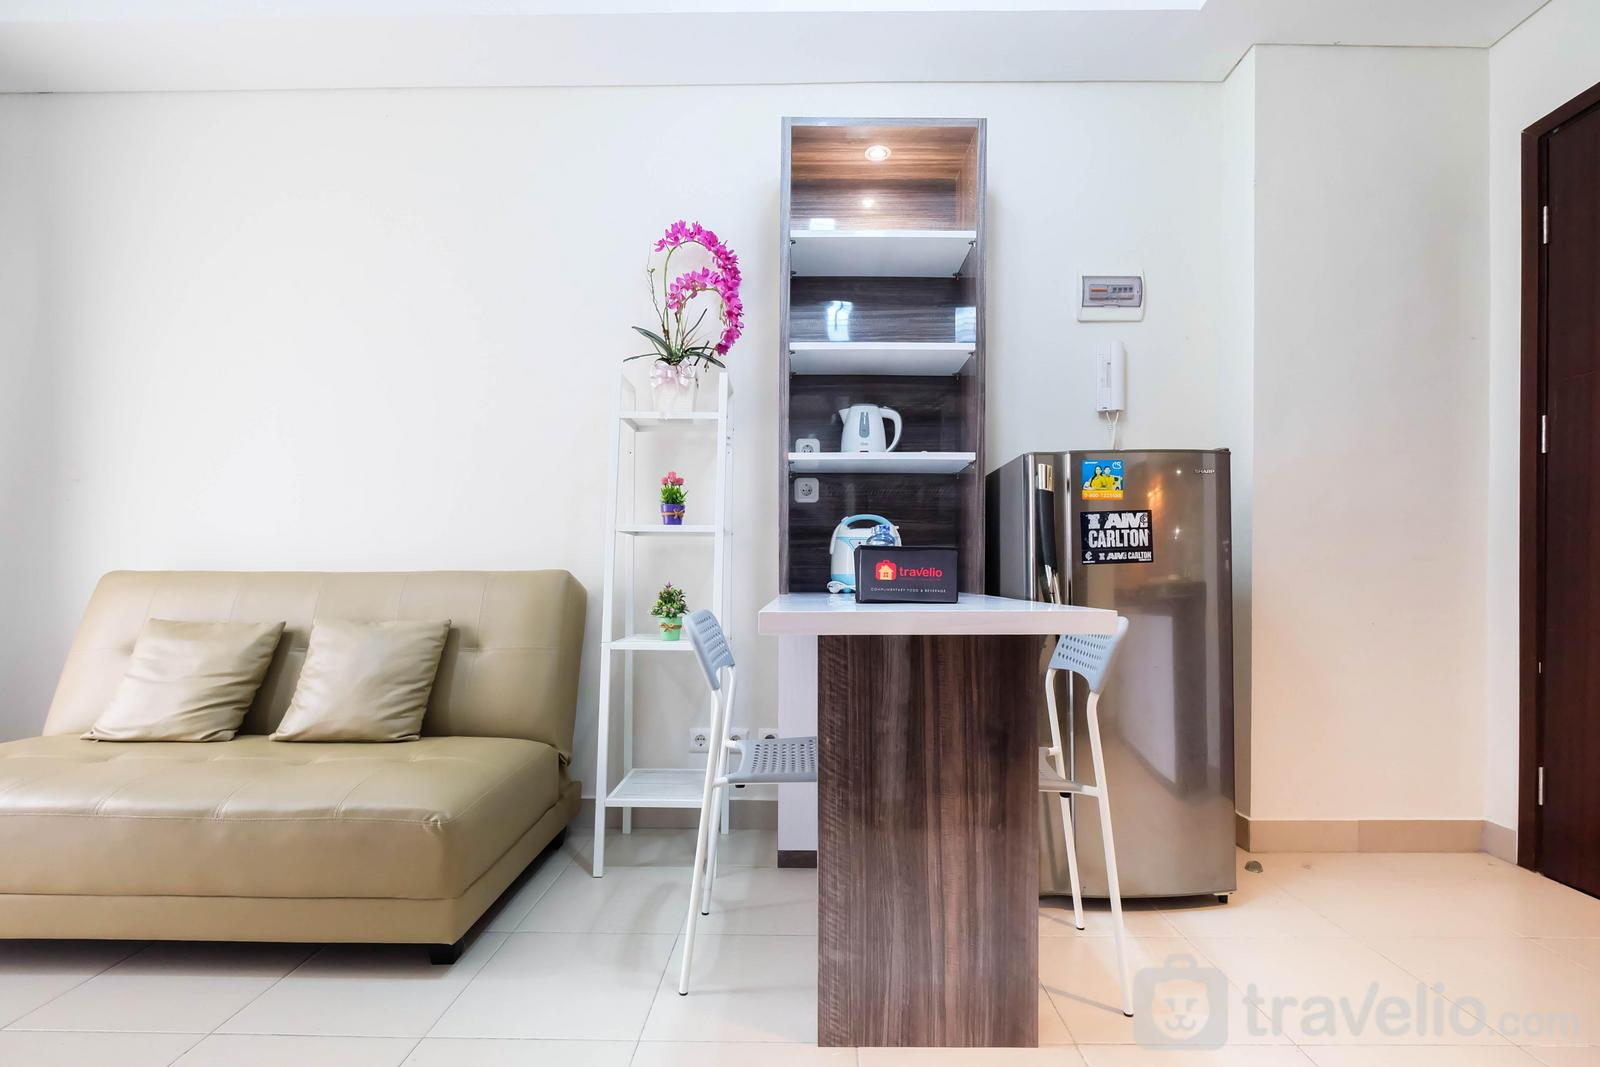 Saveria BSD City - Elegant and Spacious 1BR Saveria Apartment near ICE BSD By Travelio